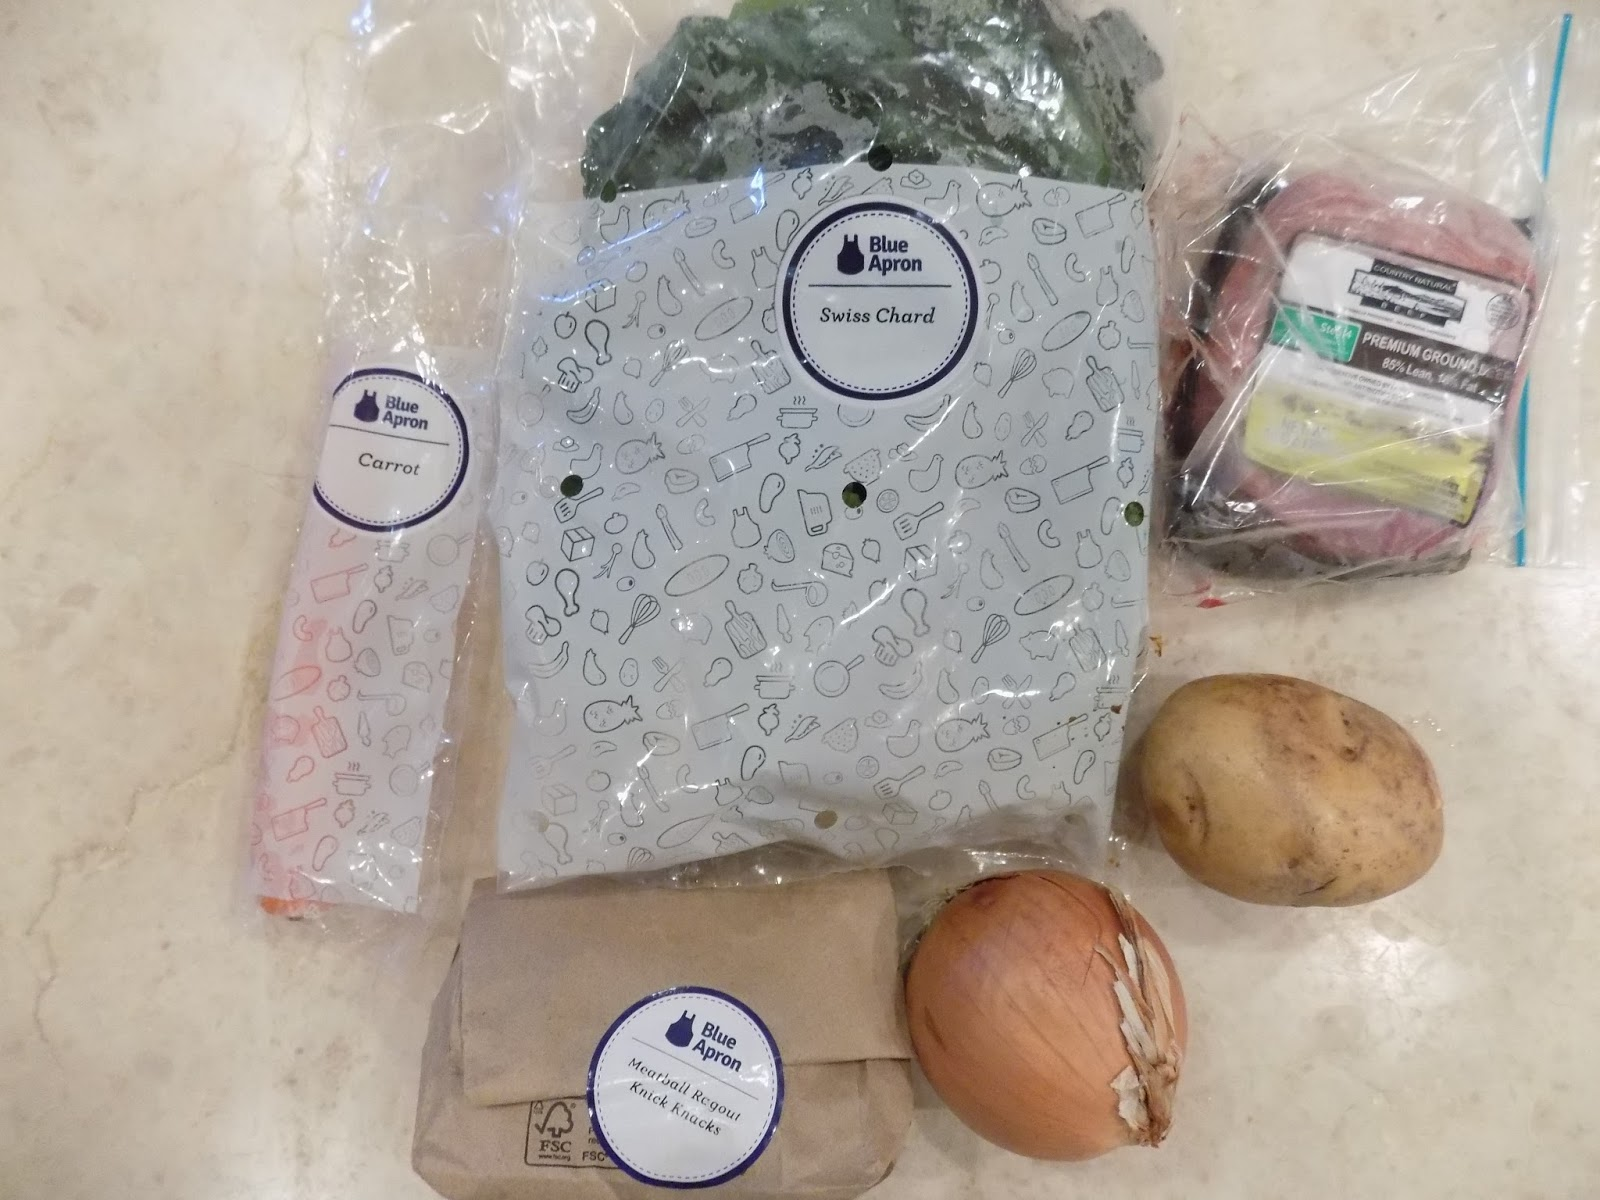 Blue apron target market - The Ingredients Meat Is In Baggie Because It Leaked